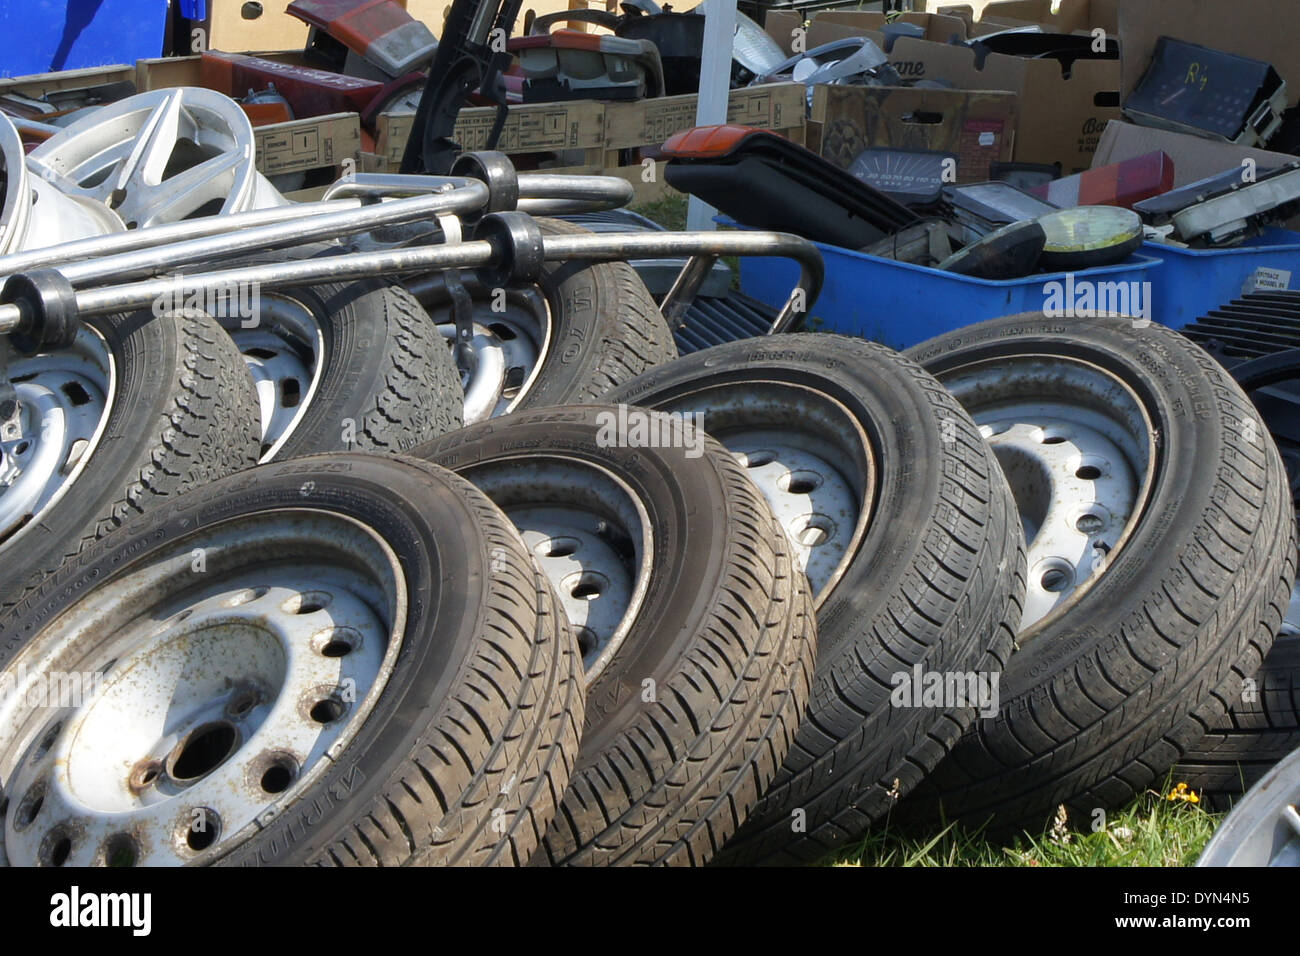 Spare Tires Stockfotos & Spare Tires Bilder - Alamy